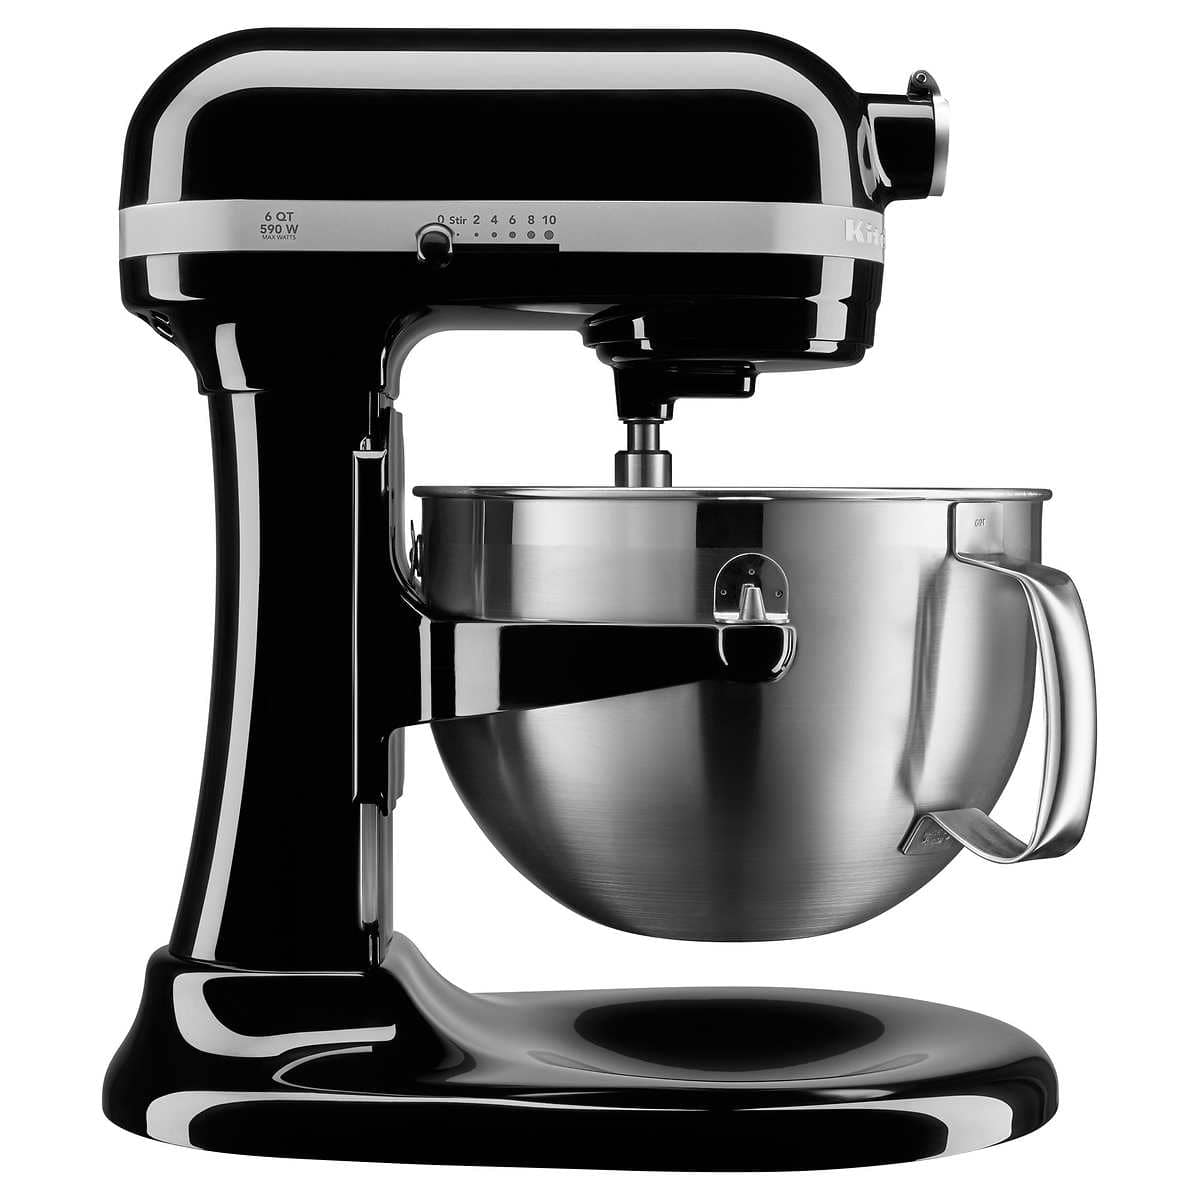 Costco Has The Kitchenaid 6 Quart Professional Bowl Lift